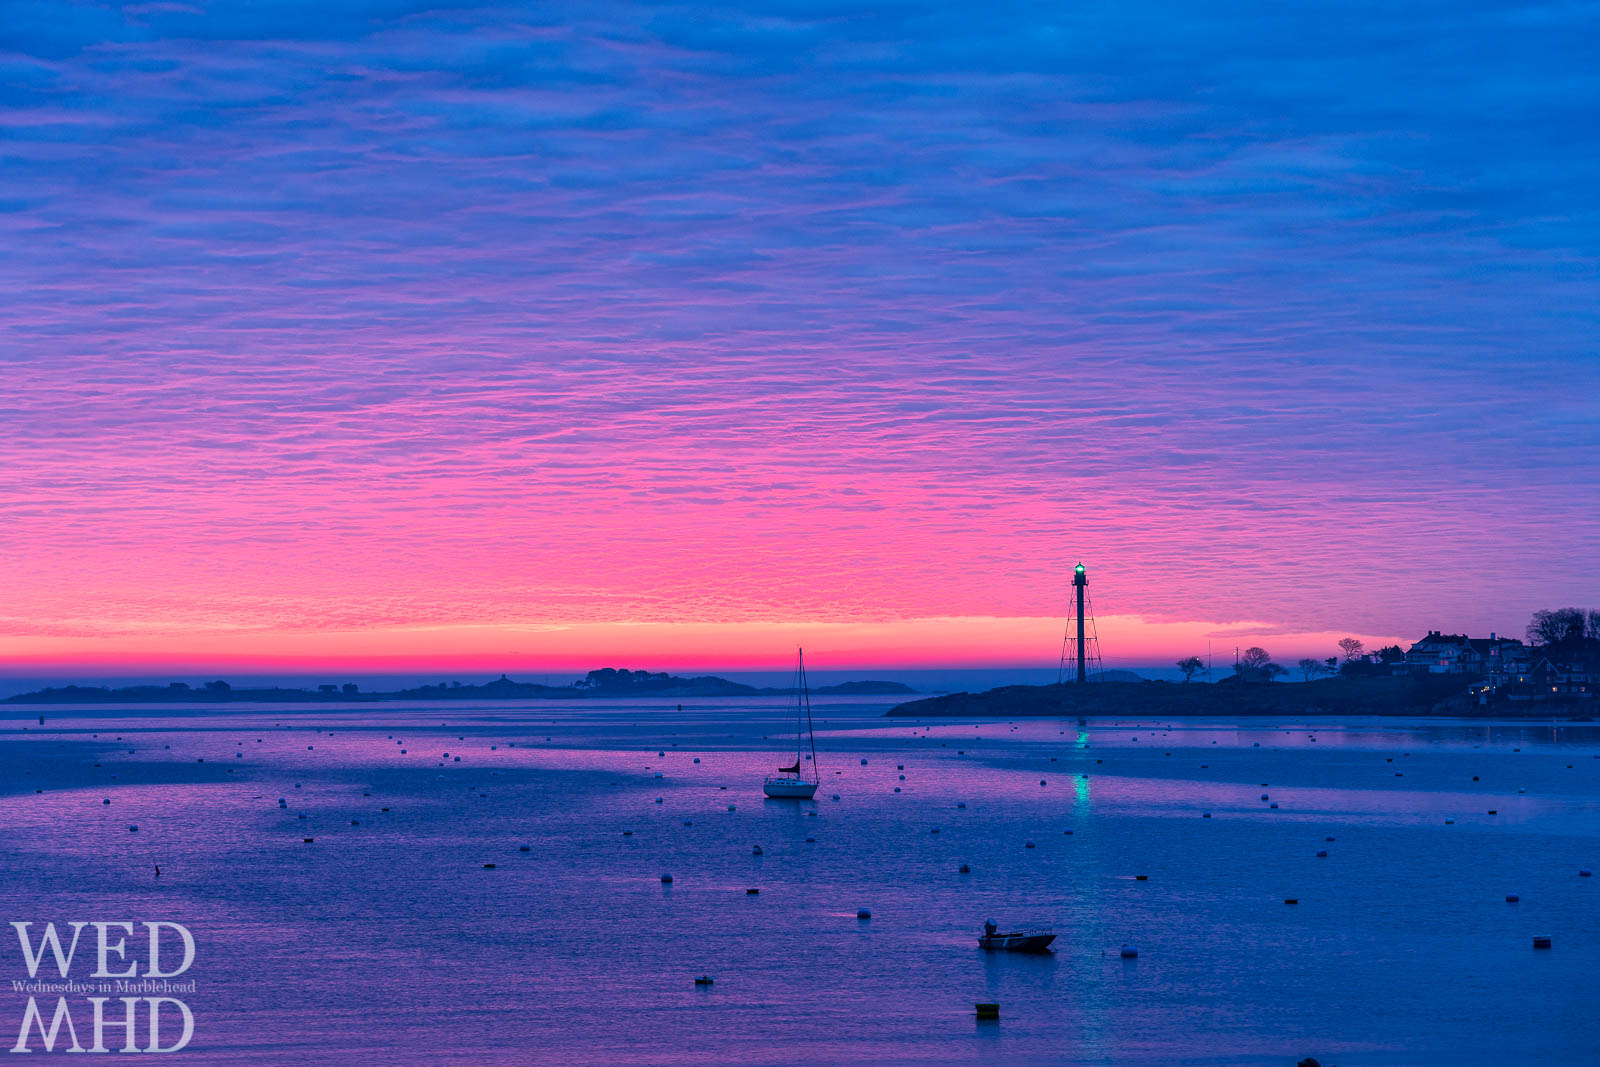 Sky-blue pink is said to be a fictional color with the term dating back to the 1880s but it appeared to come to life on this morning in Marblehead